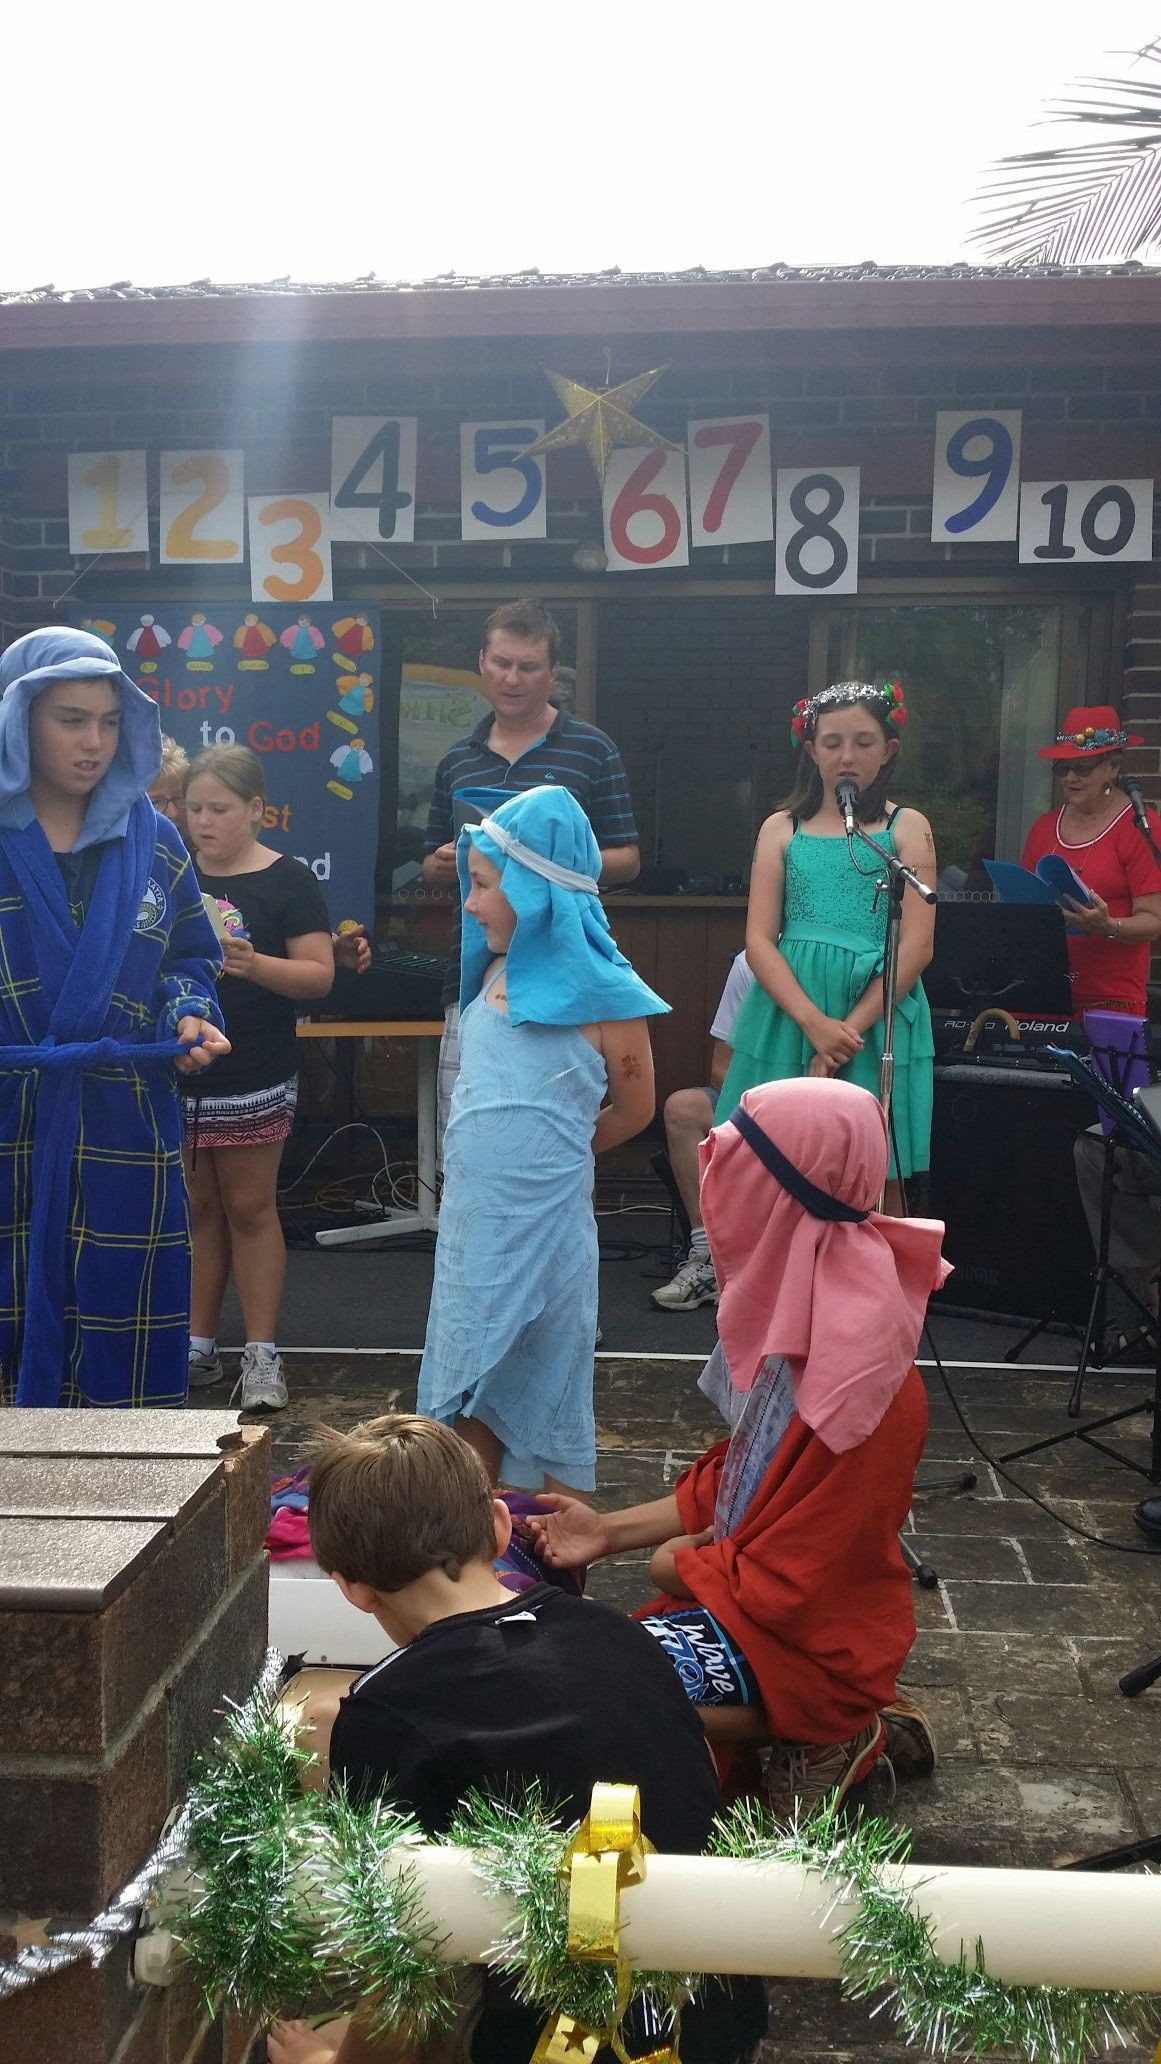 All the kids..done a wonderful job on stage...isnt it funny that joesph went 4 parramatta lol